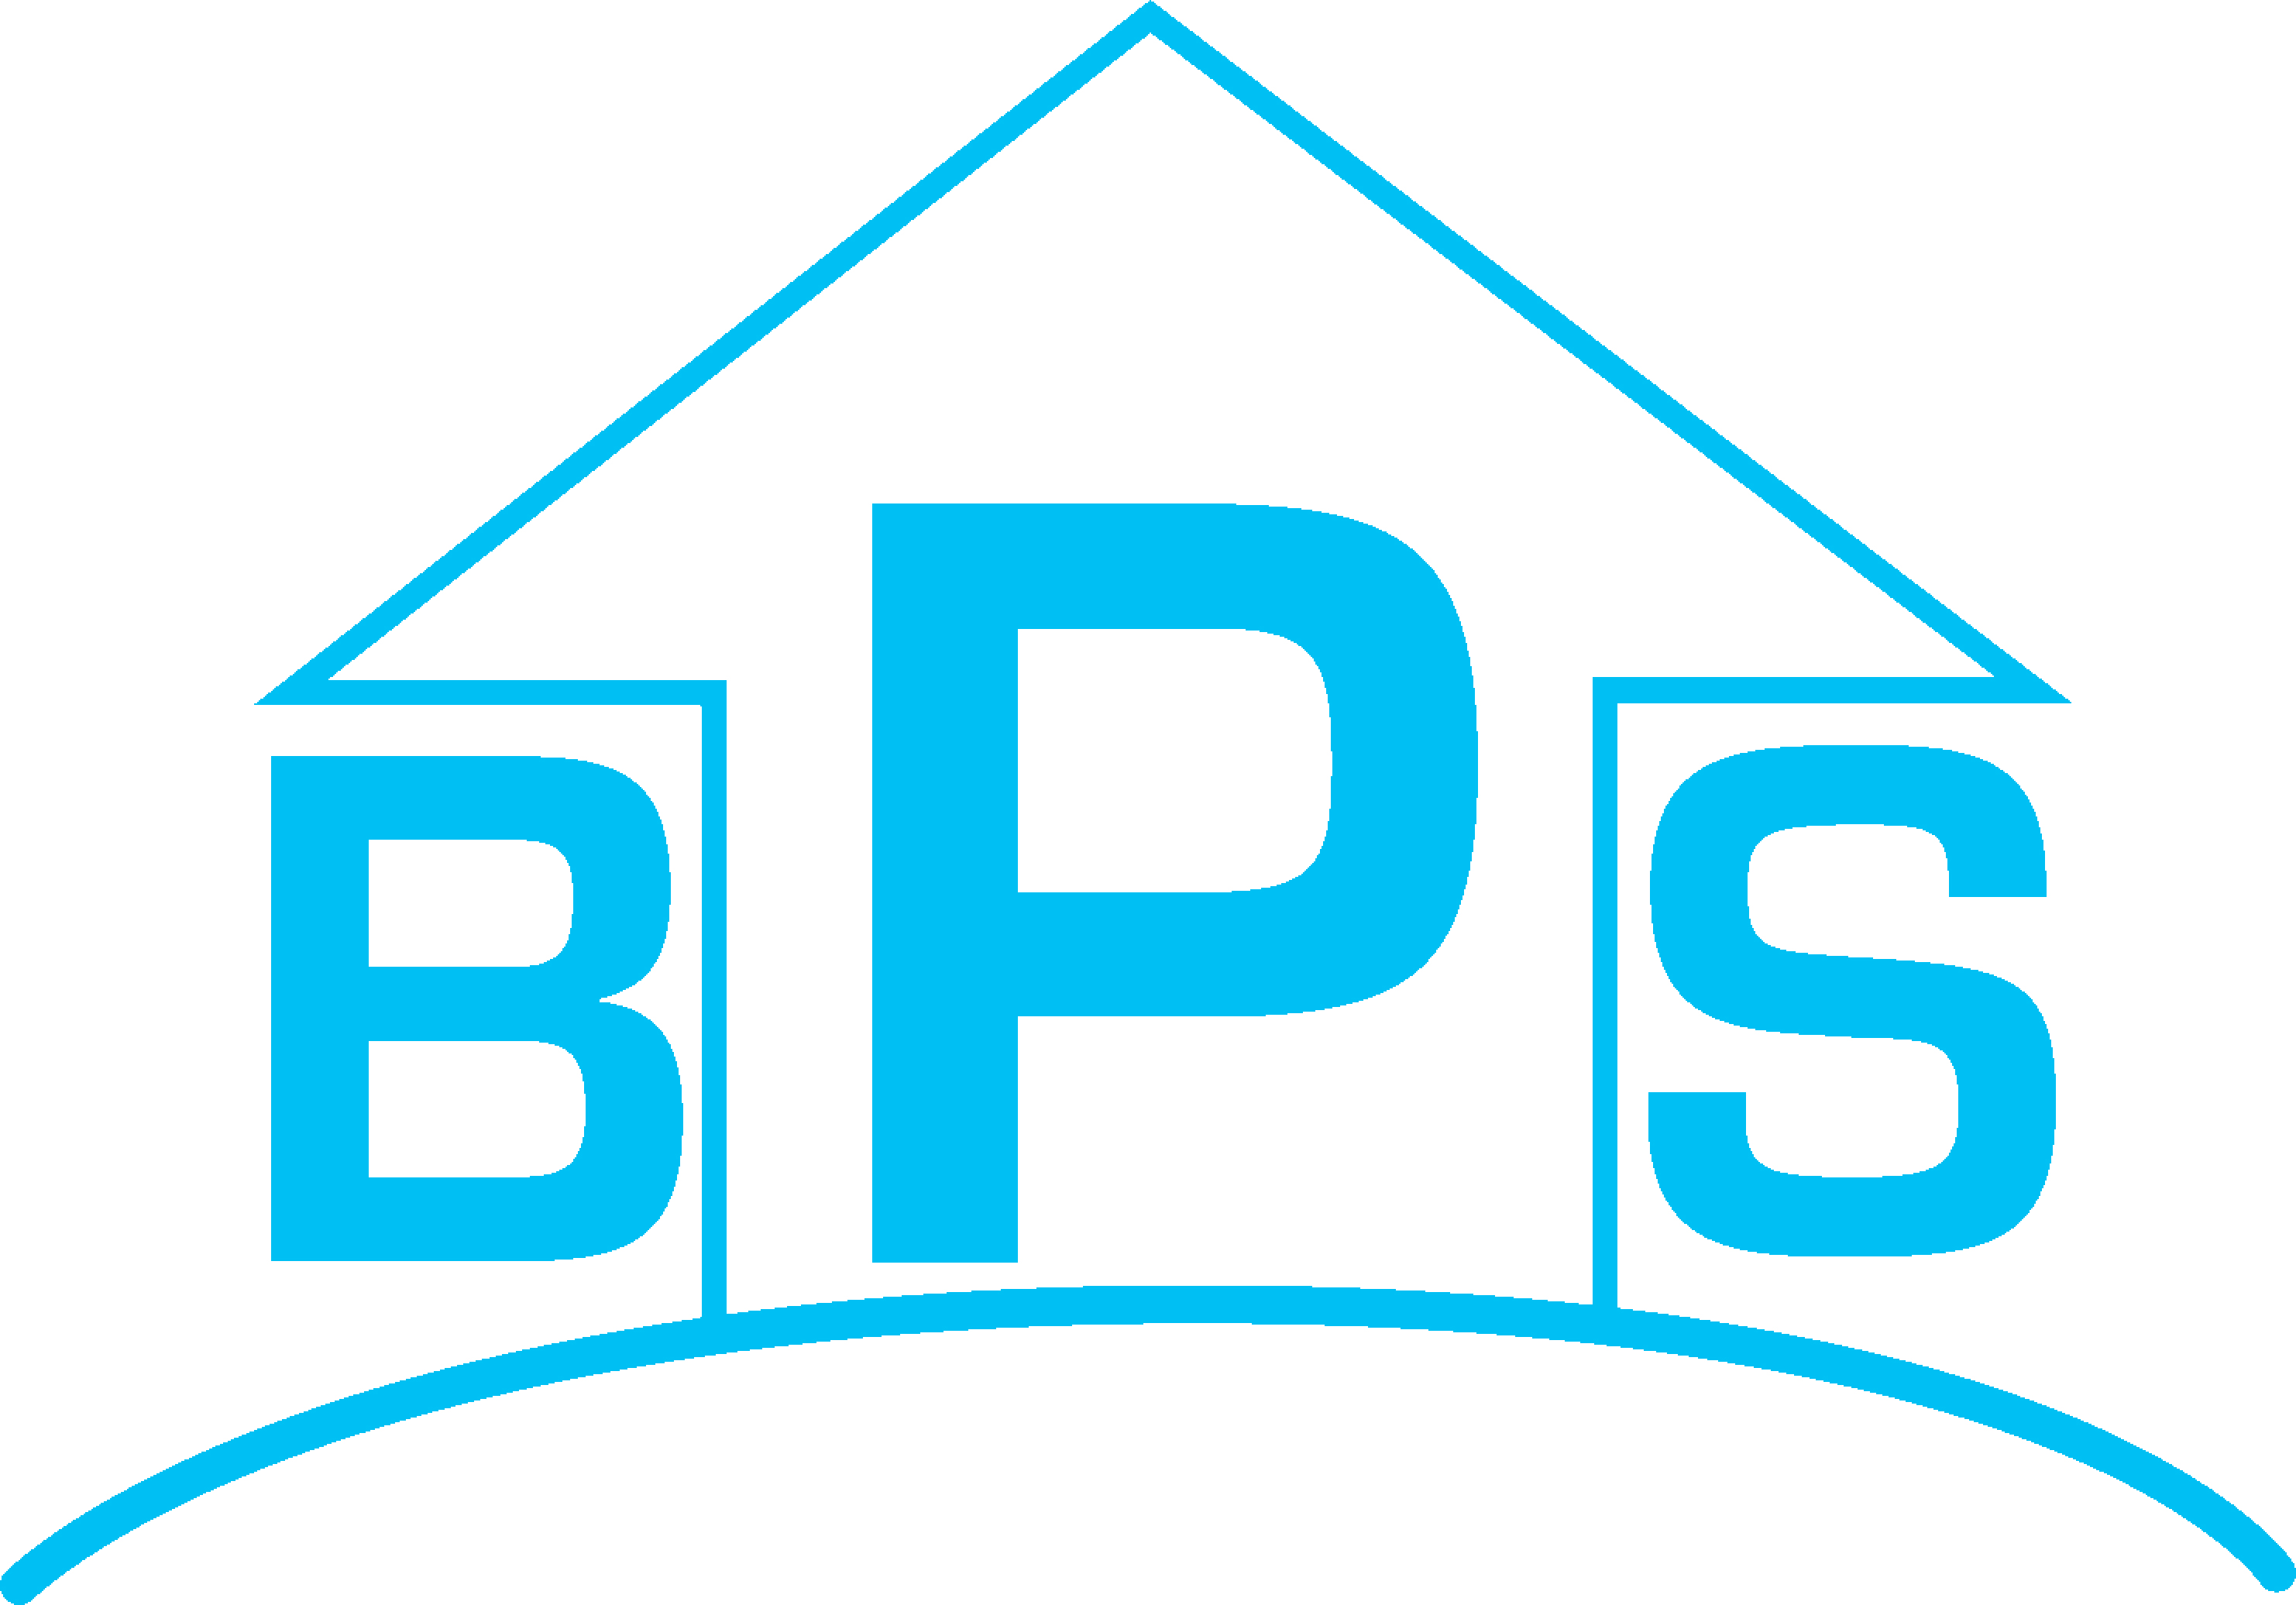 Broomhill Property Shop logo